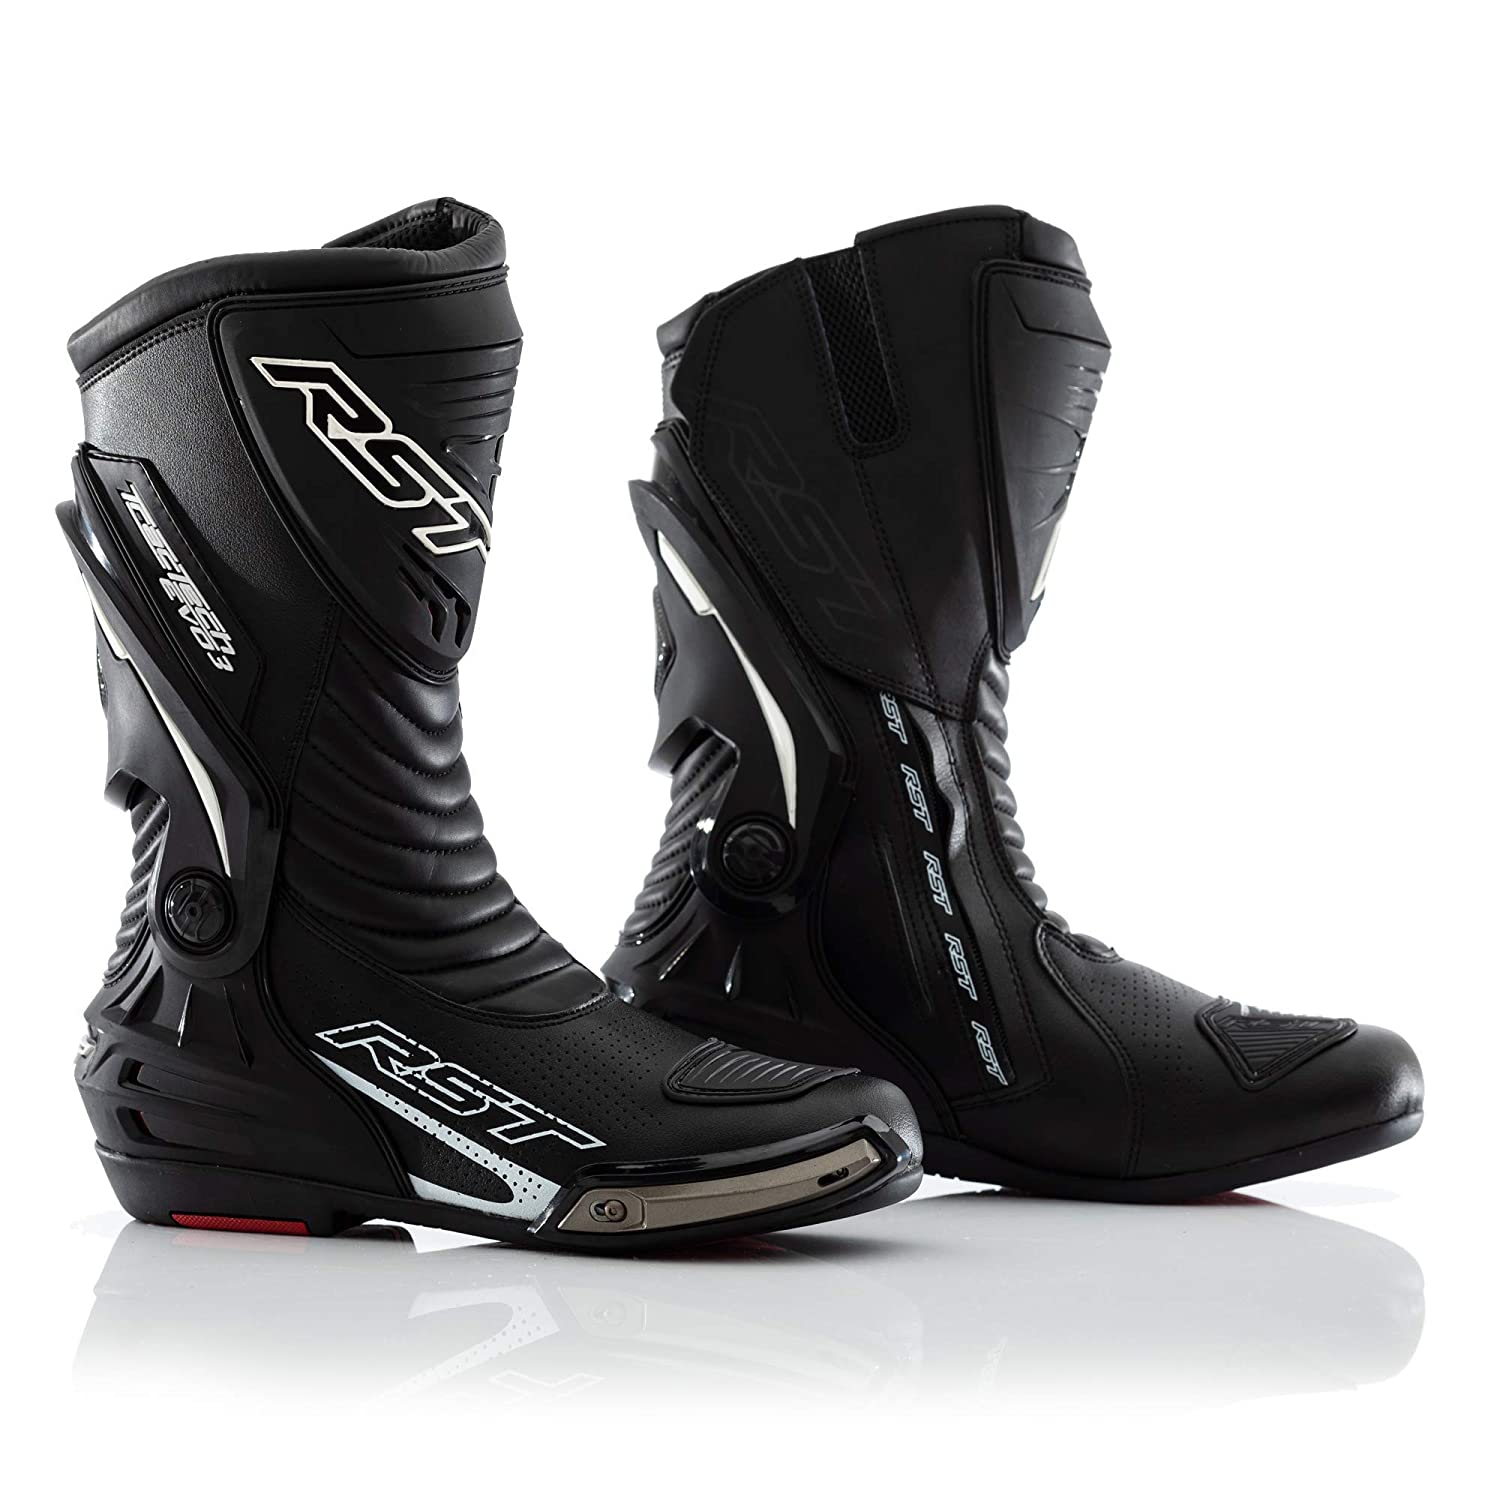 RST 2101 Tractech Evo 3スポーツCEユニセックスMotorcycle Boots – Flourecentレッド 40 EVO-2101-FLOU-RED B079NFYH49 Black, Flourecent Red 40